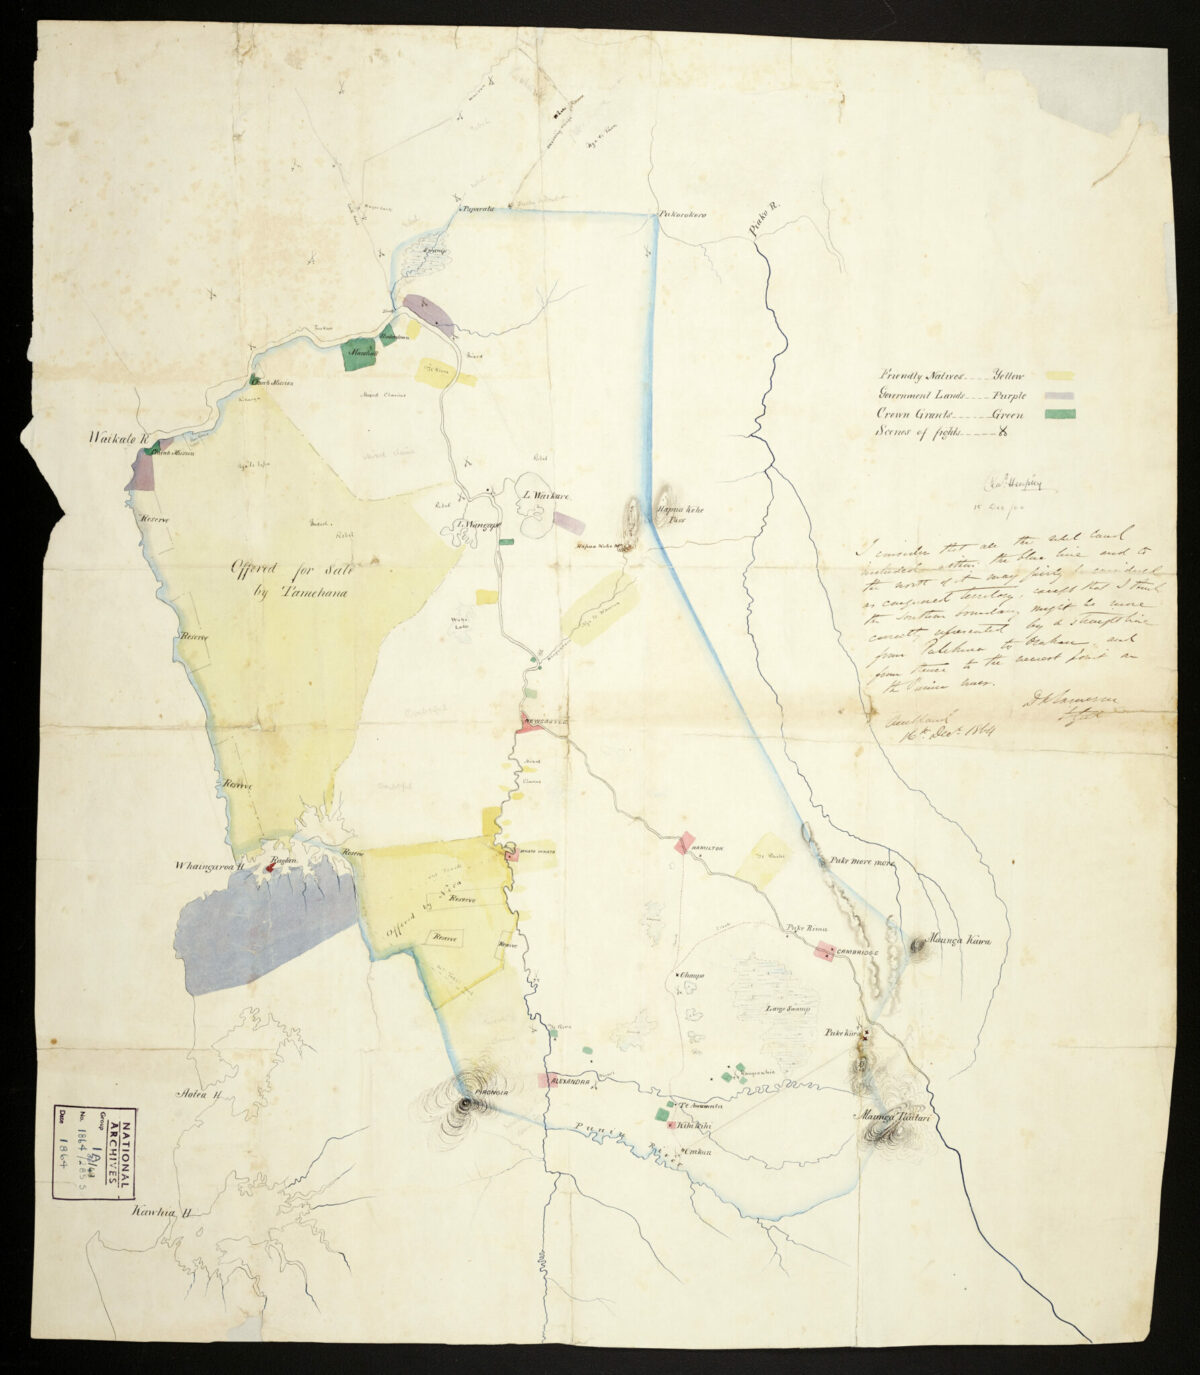 Confiscated_territory_after_the_Maori_Wars,_in_the_Waikato,_1864 (1)